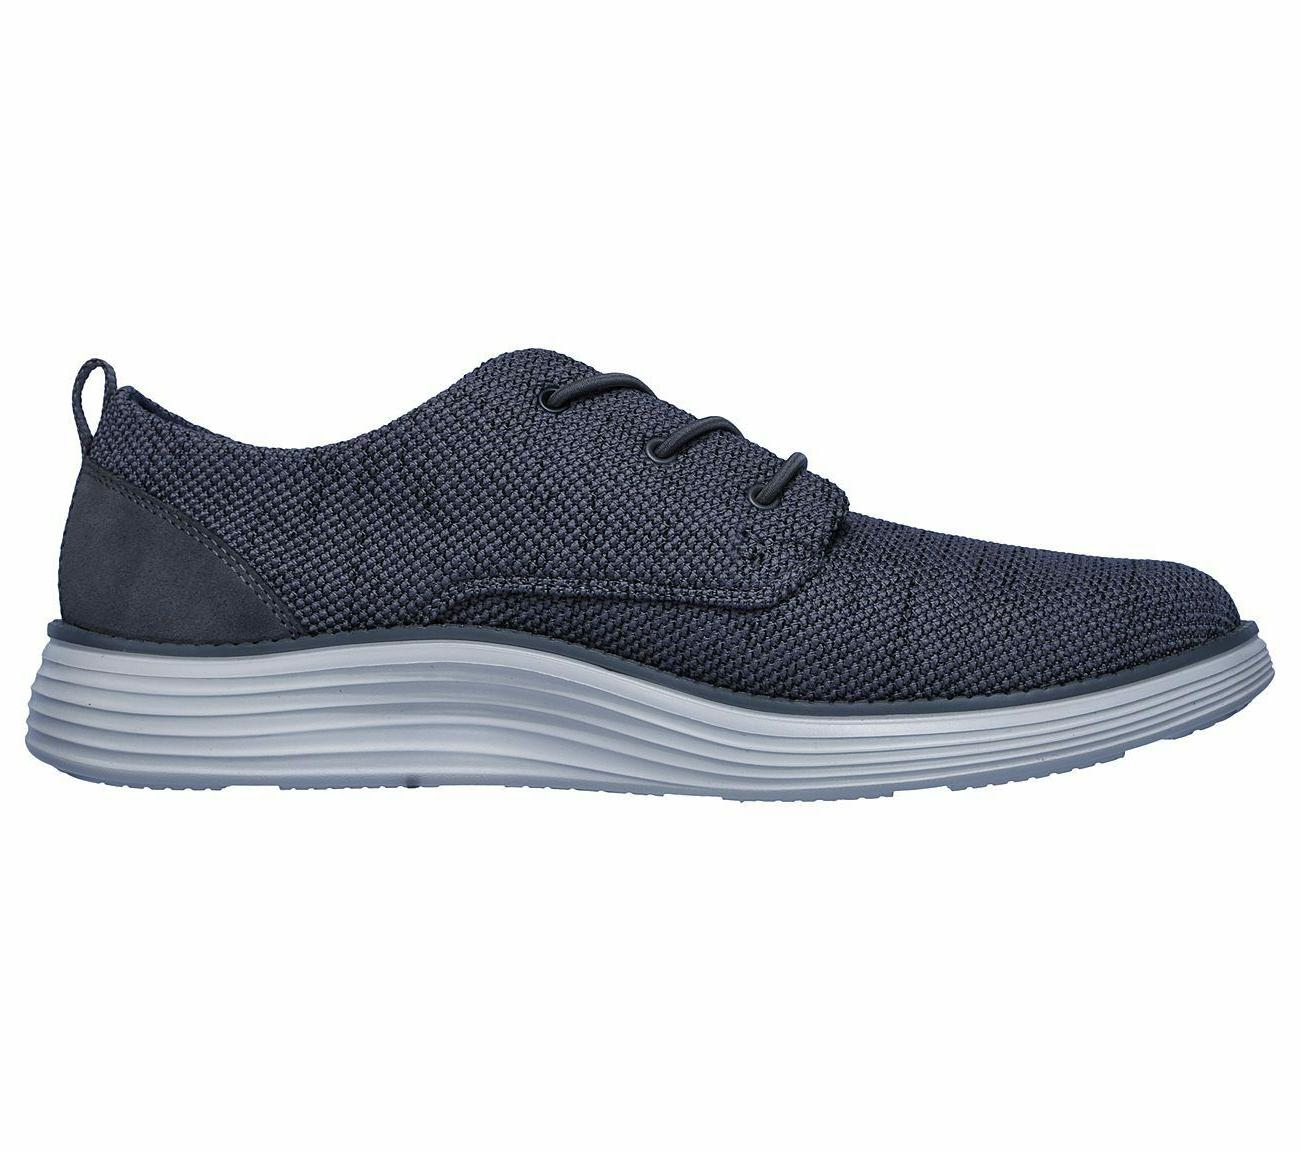 Skechers shoes Gray Memory Foam Soft Mesh 65900